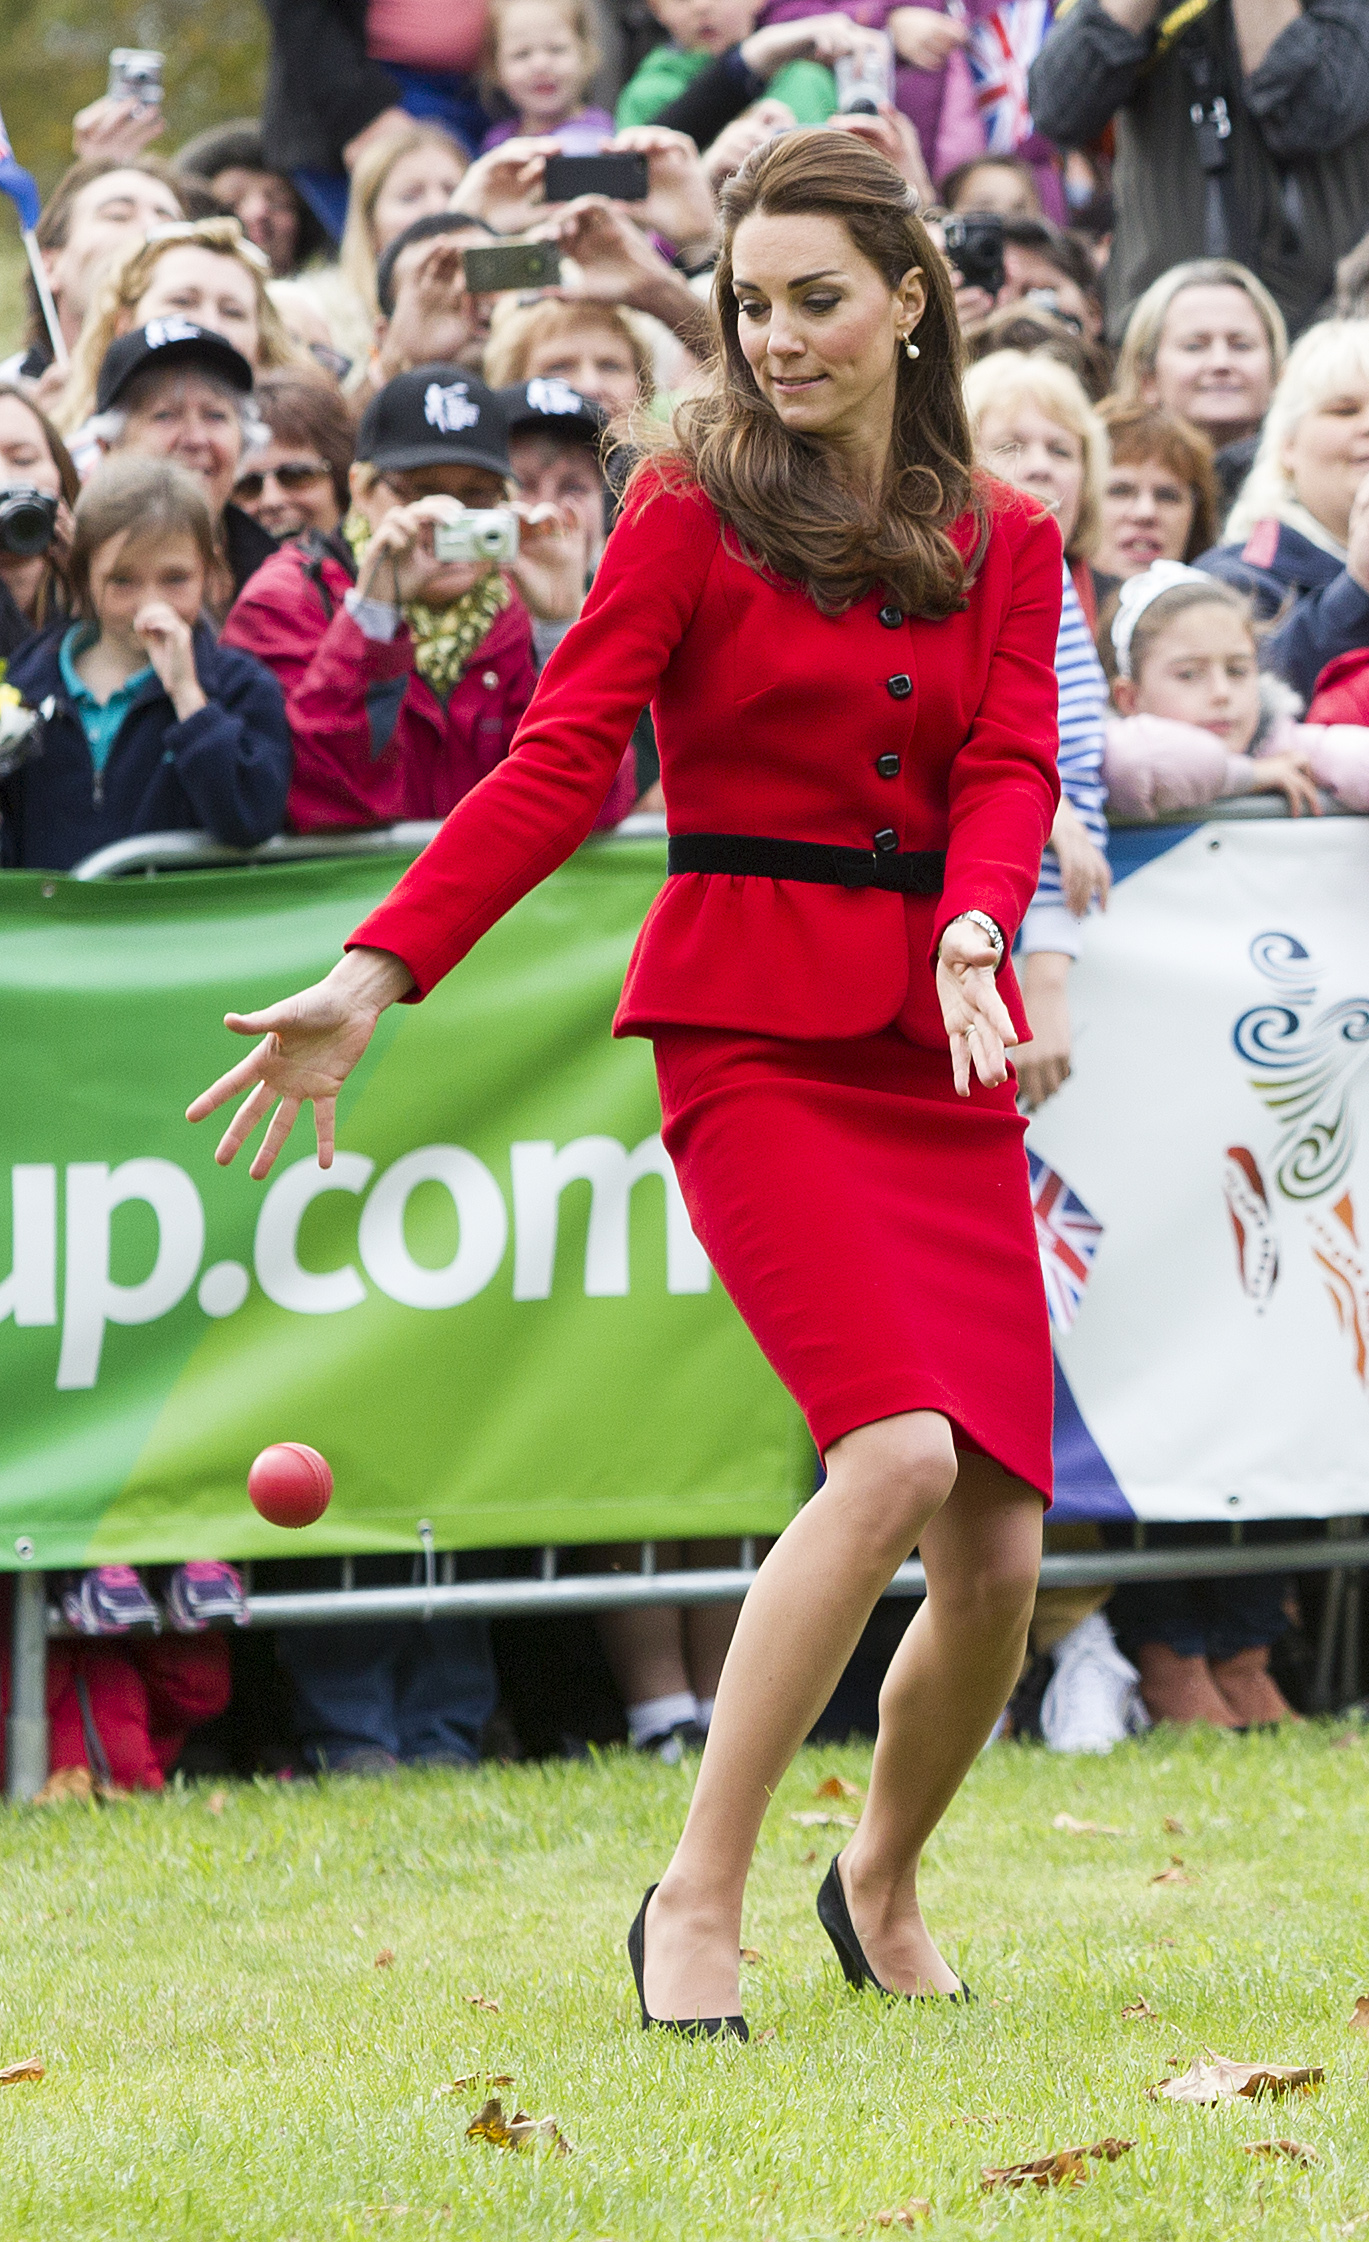 The Duke and Duchess of Cambridge travel to Christchurch, New Zealand and played cricket with local children. Photograph by Ian Jones ©2014.